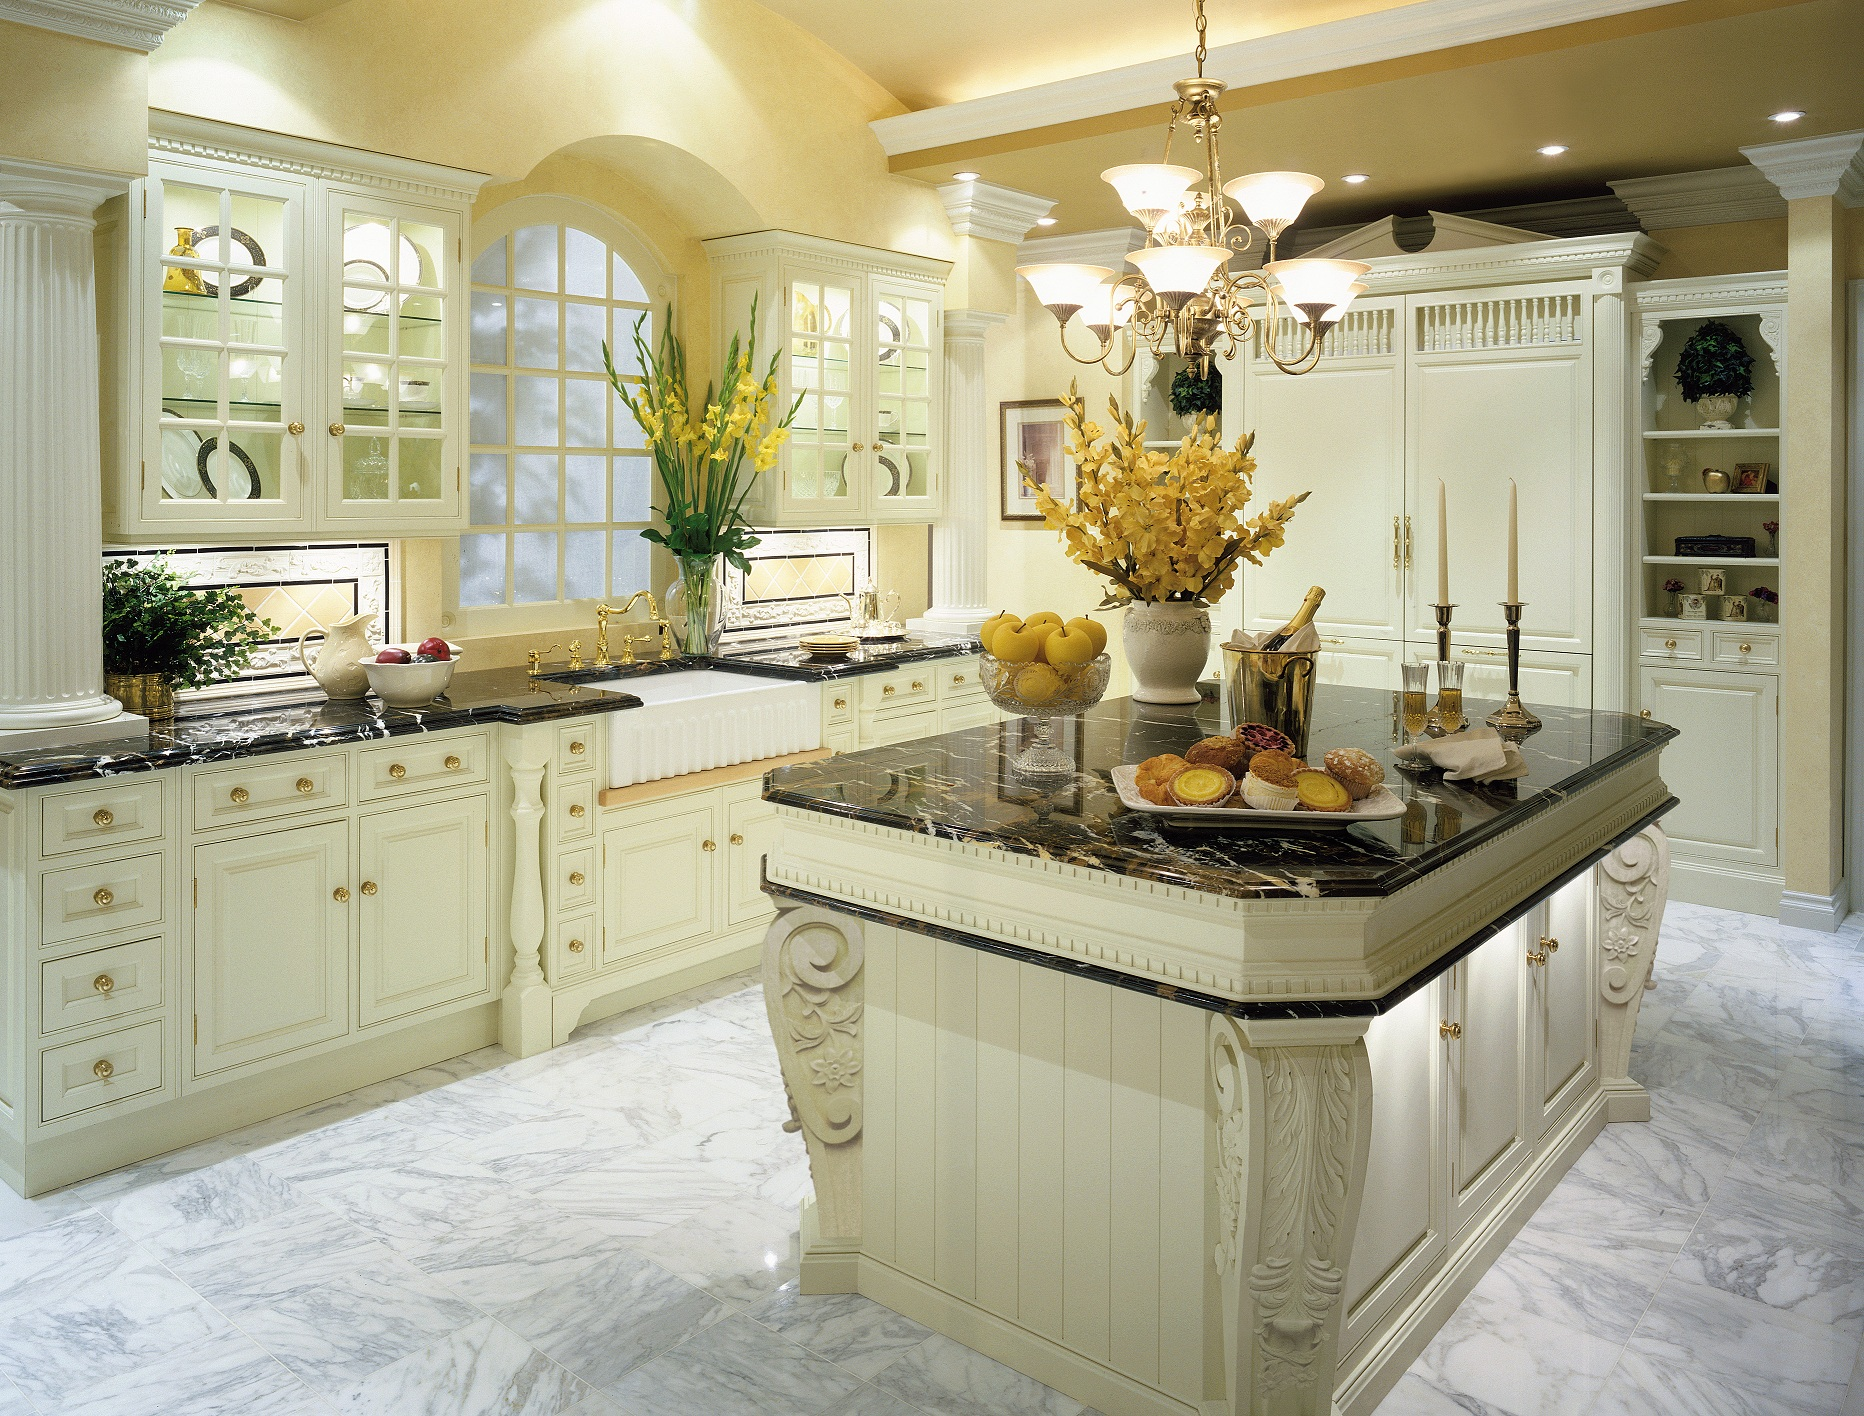 Beautiful Traditional Kitchen Designs The Enduring Style Of The Traditional Kitchen